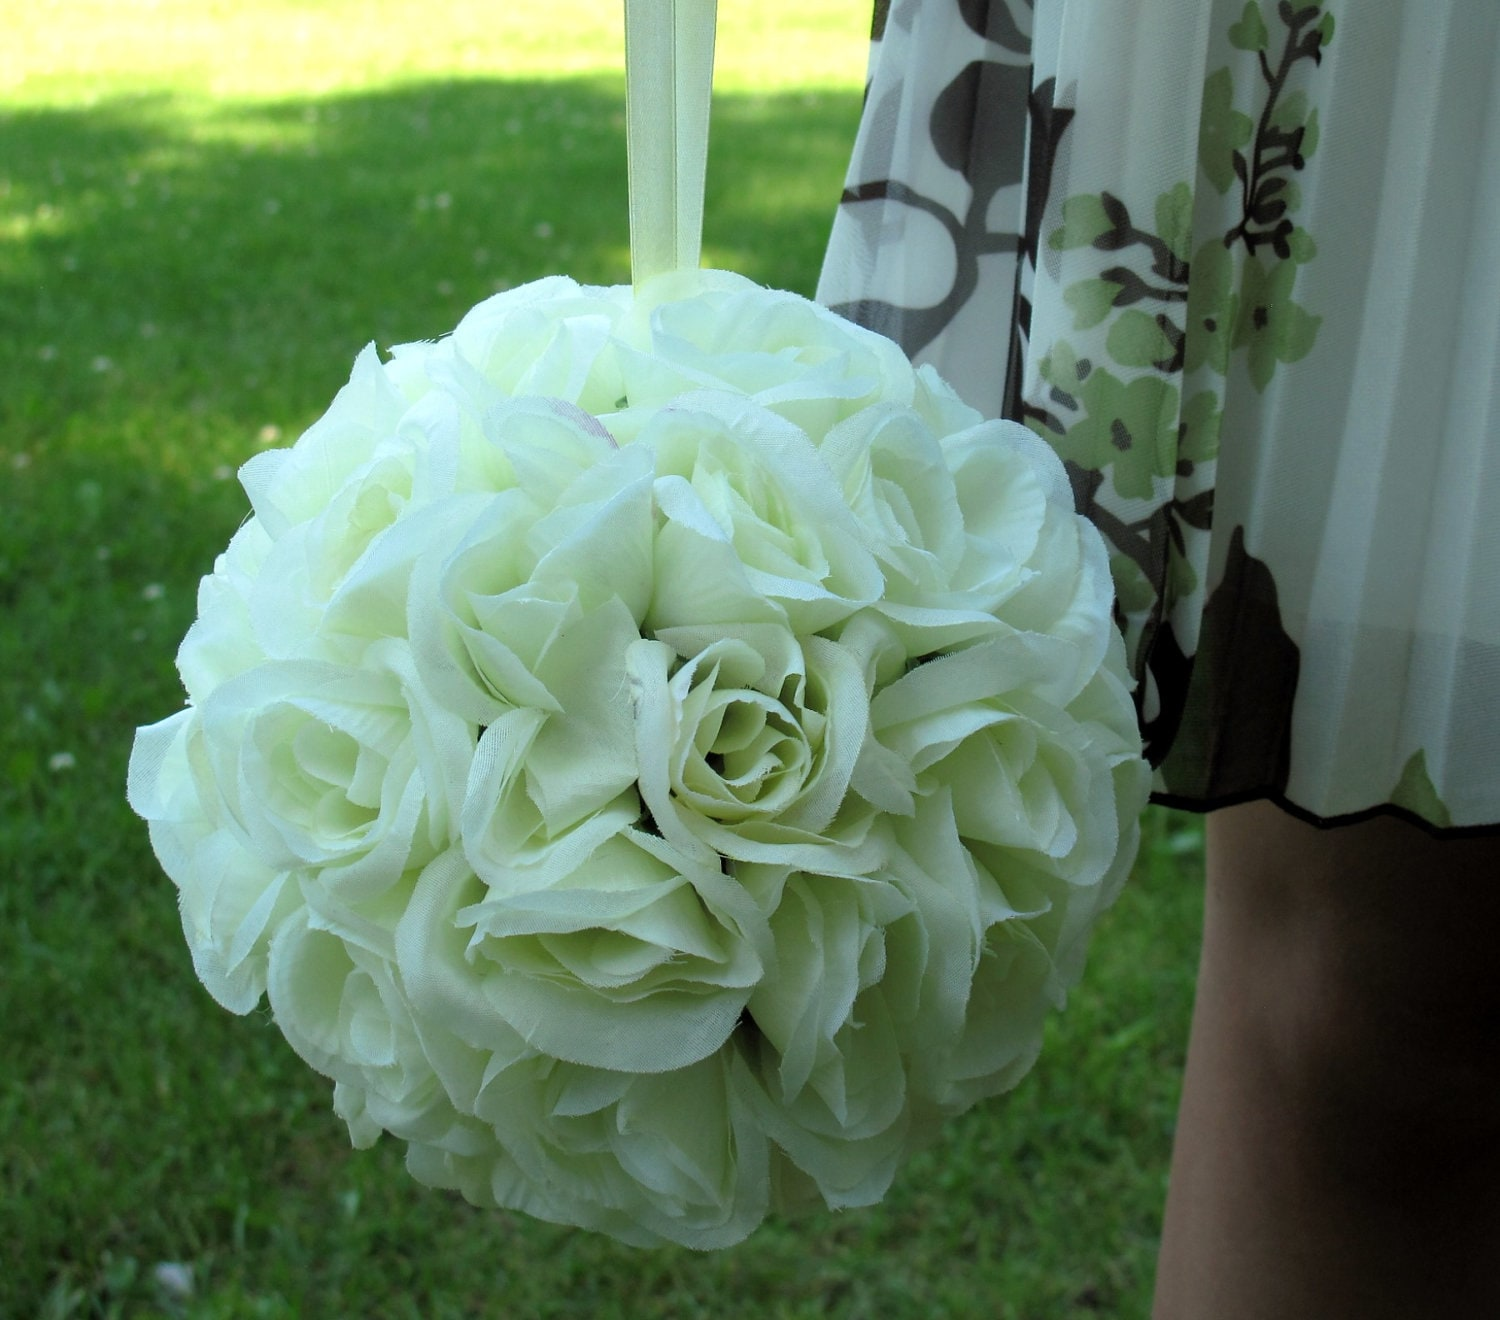 Pomander Flower Girl Kissing Ball Rose